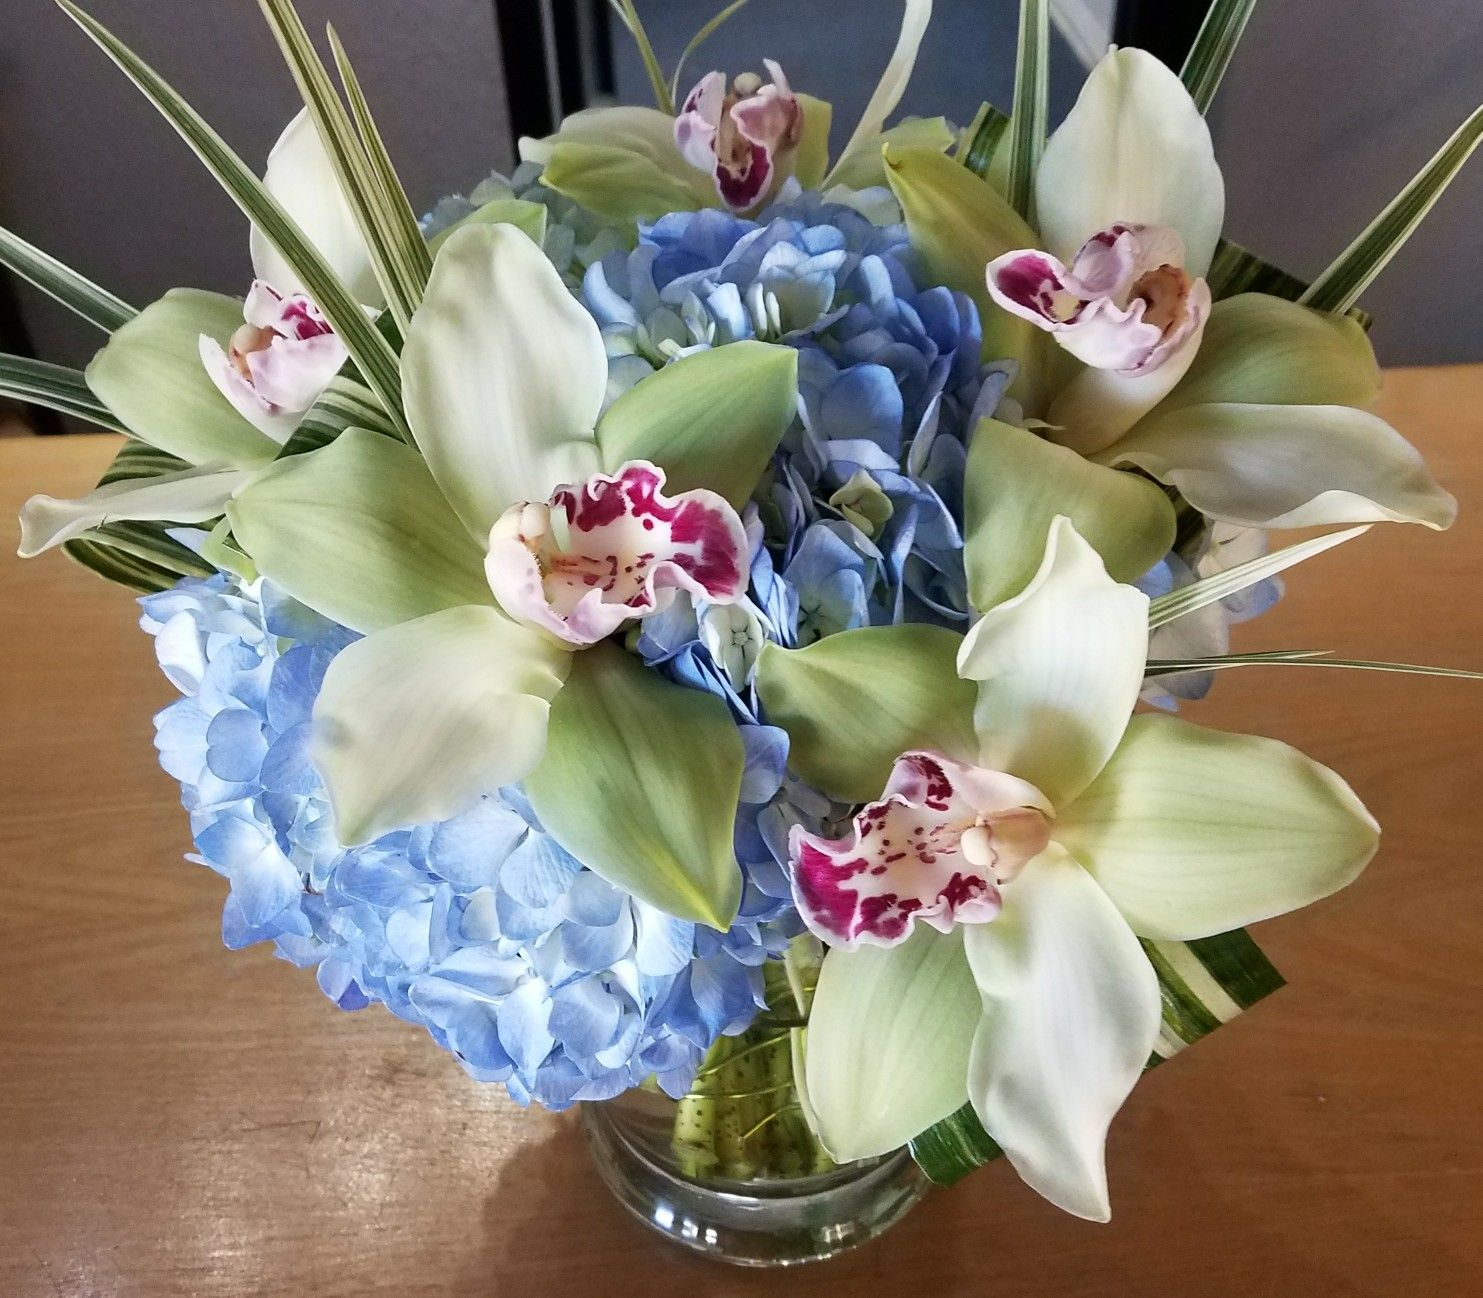 Pin by The JillTed Florist on Centerpieces Centerpieces